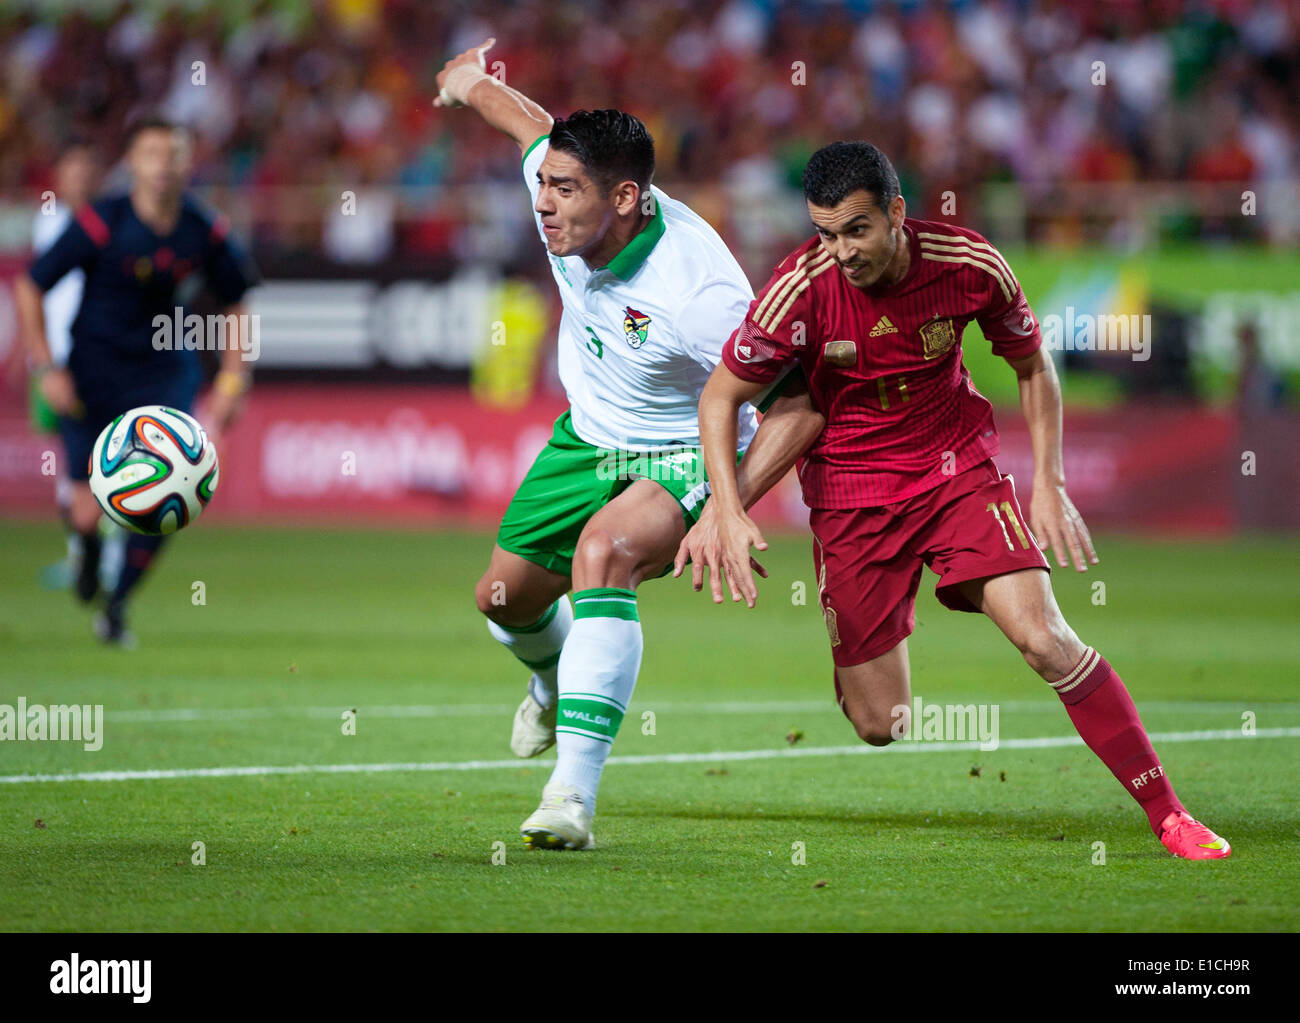 Sevilla. 30th May, 2014. Spain's Pedro (R) vies with Luis Gutierrez of Bolivia during the international friendly - Stock Image